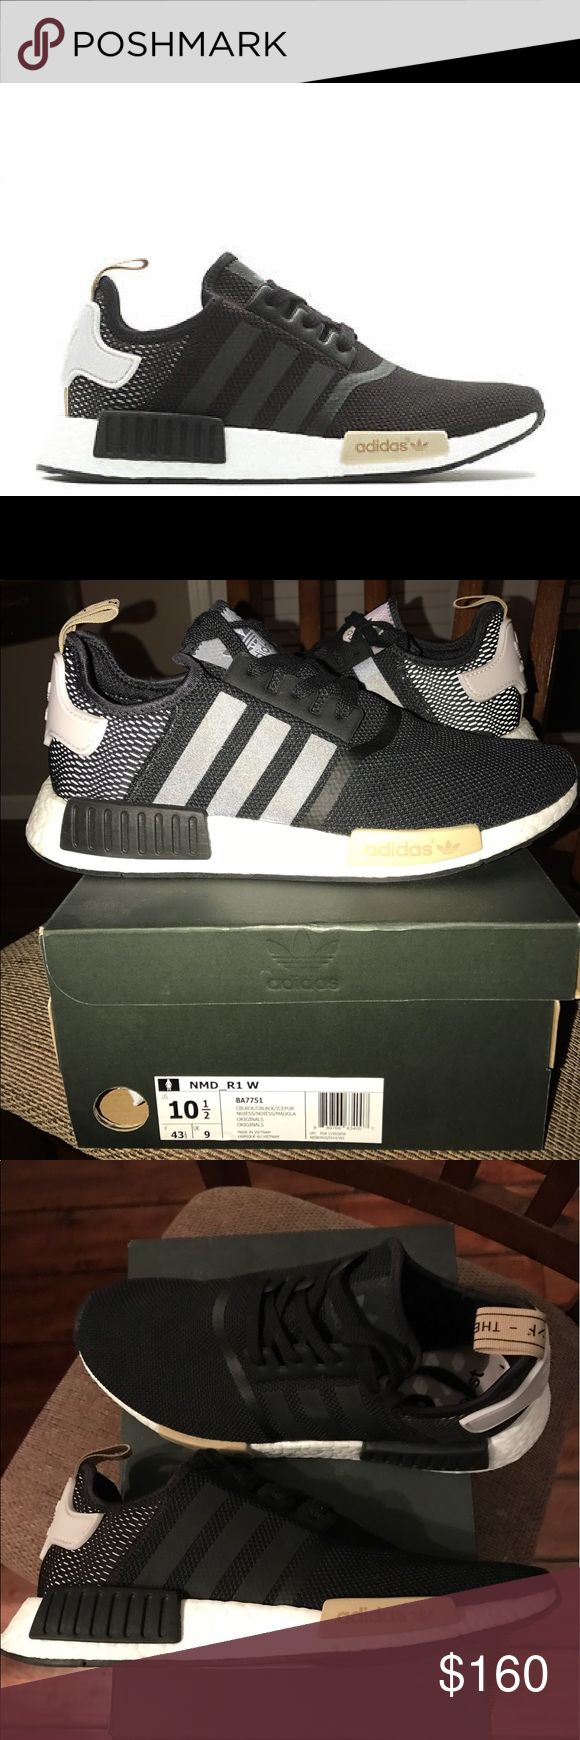 Adidas NMD_R1 Woman's Adidas NMD_R1. Flawless, perfect condition. Worn for less than an hour. Black/gold size 10.5. No trades and firm on price! adidas Shoes Sneakers